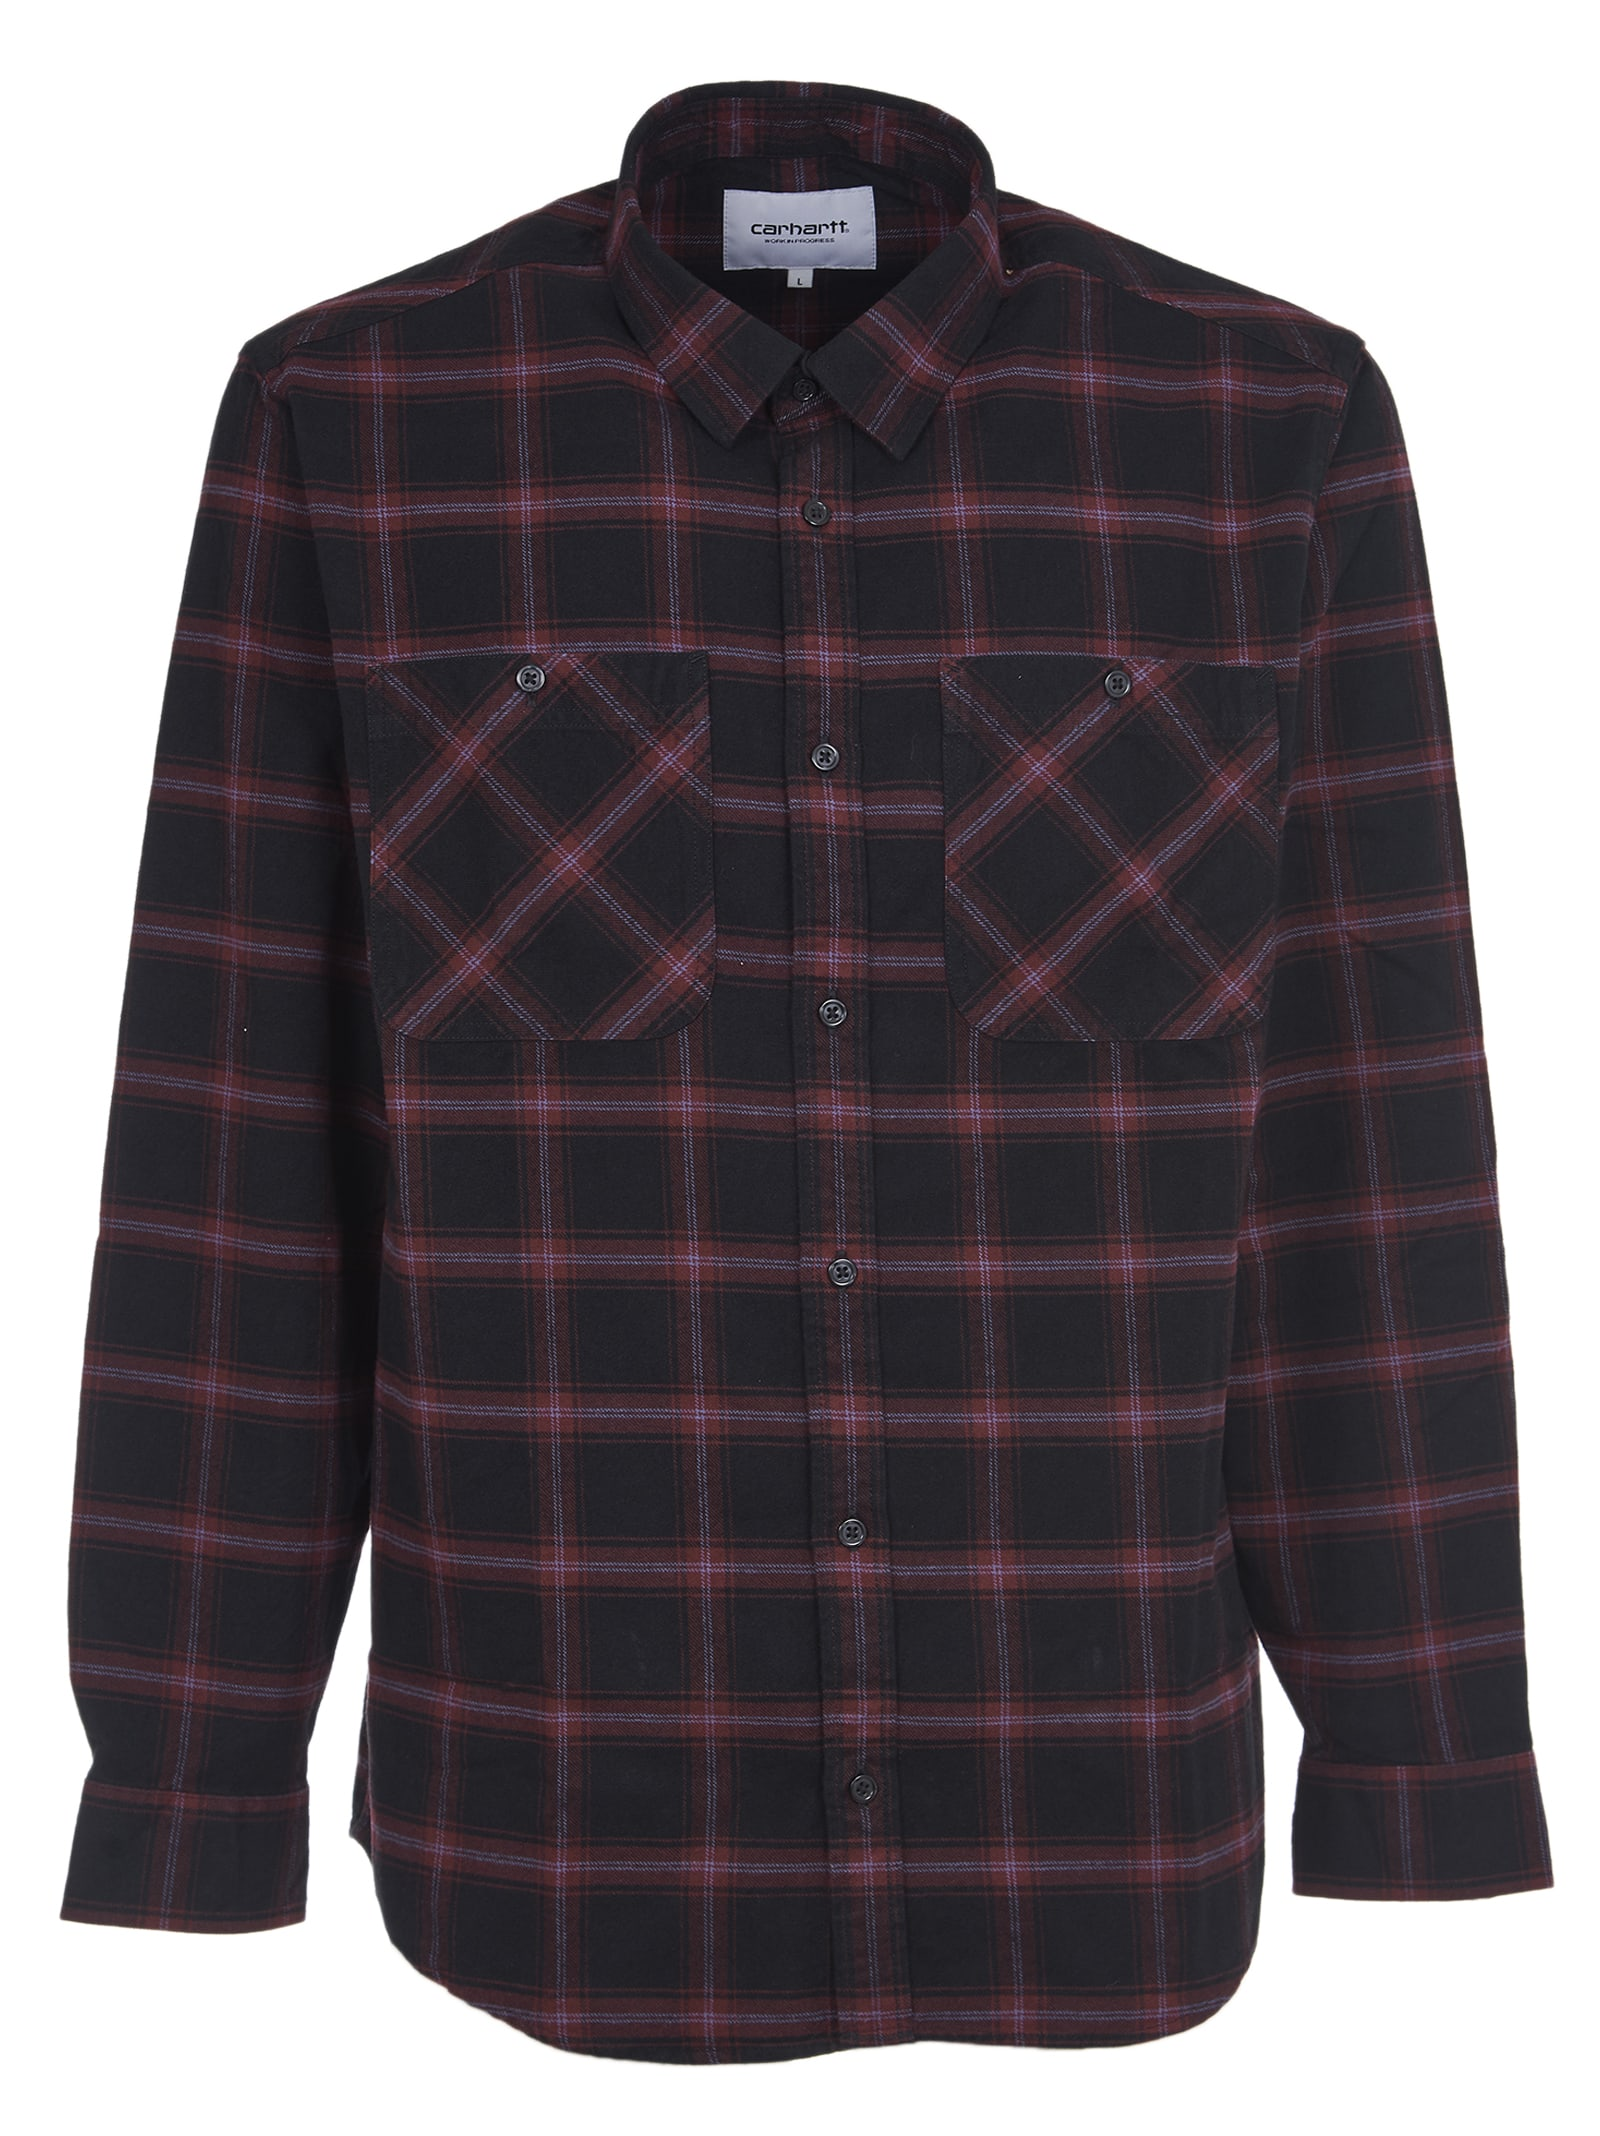 Black Shirt With Red Check